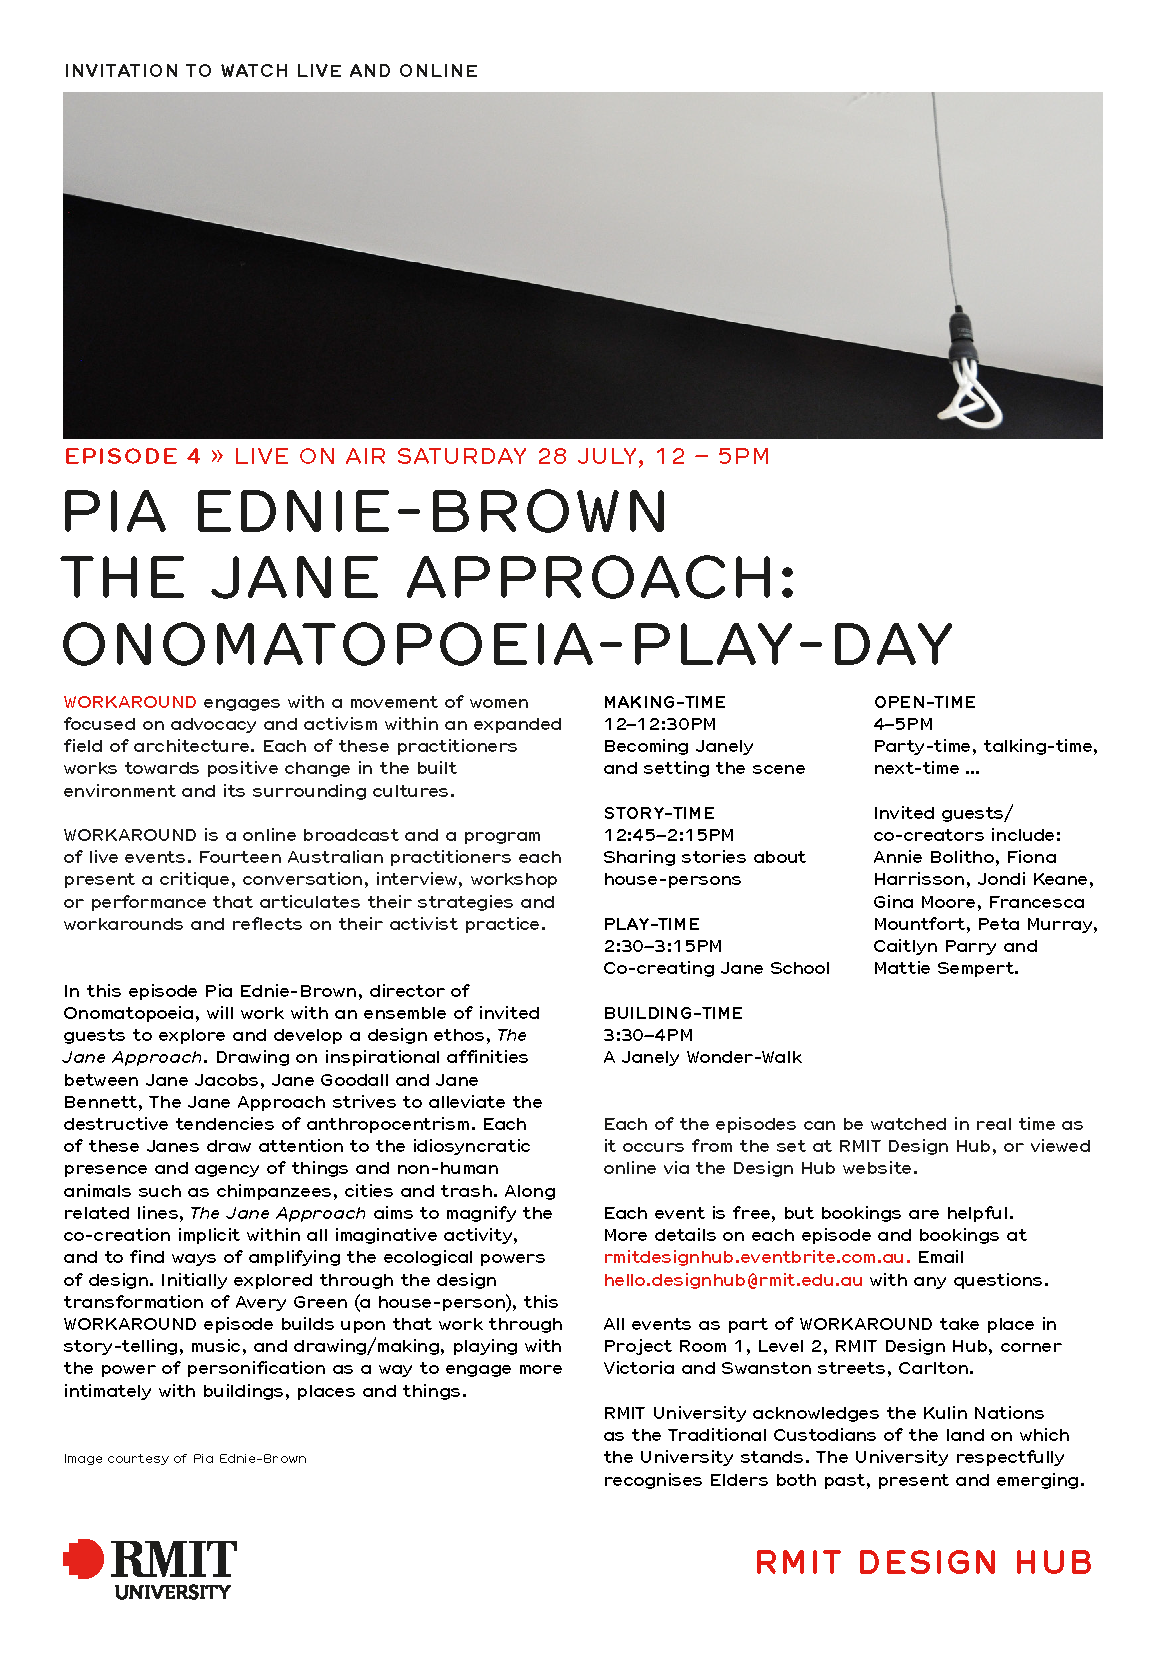 WA_Episode 4_Pia Ednie-Brown_Flyer.png